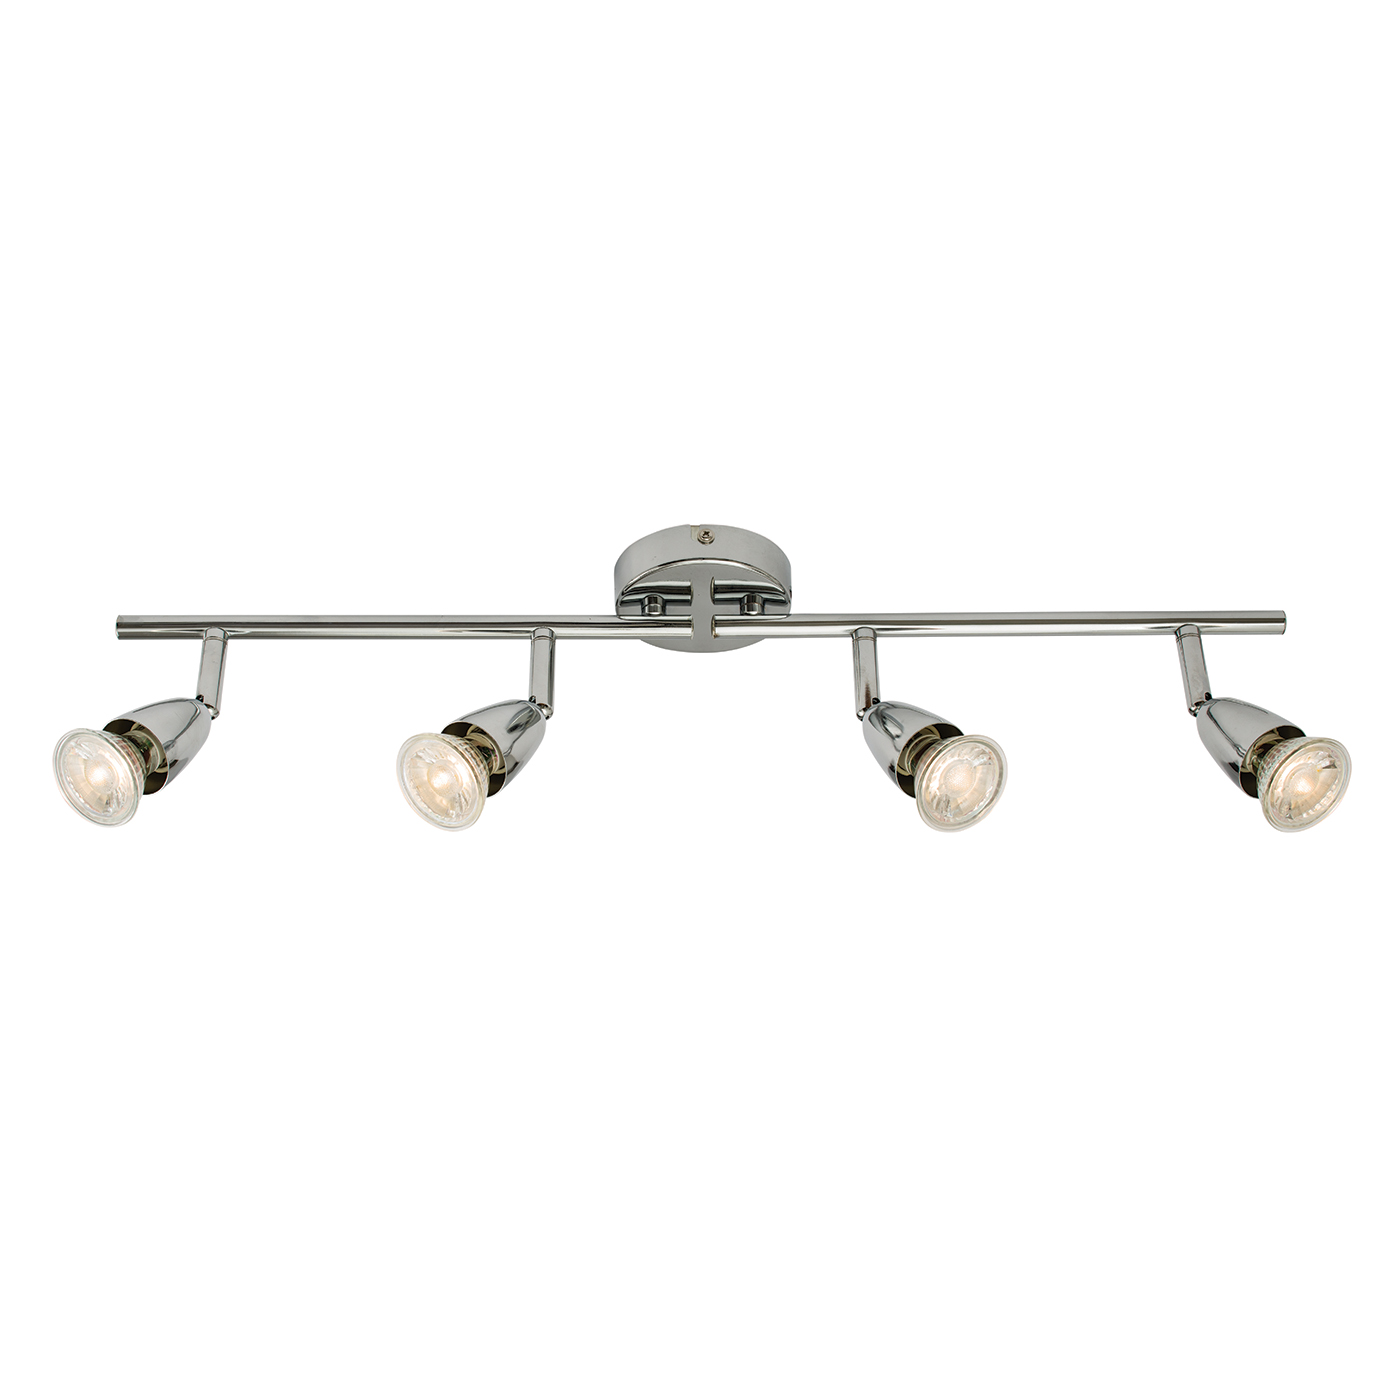 Endon Amalfi ceiling spotlight bar 4x 50W Chrome effect plate Thumbnail 1